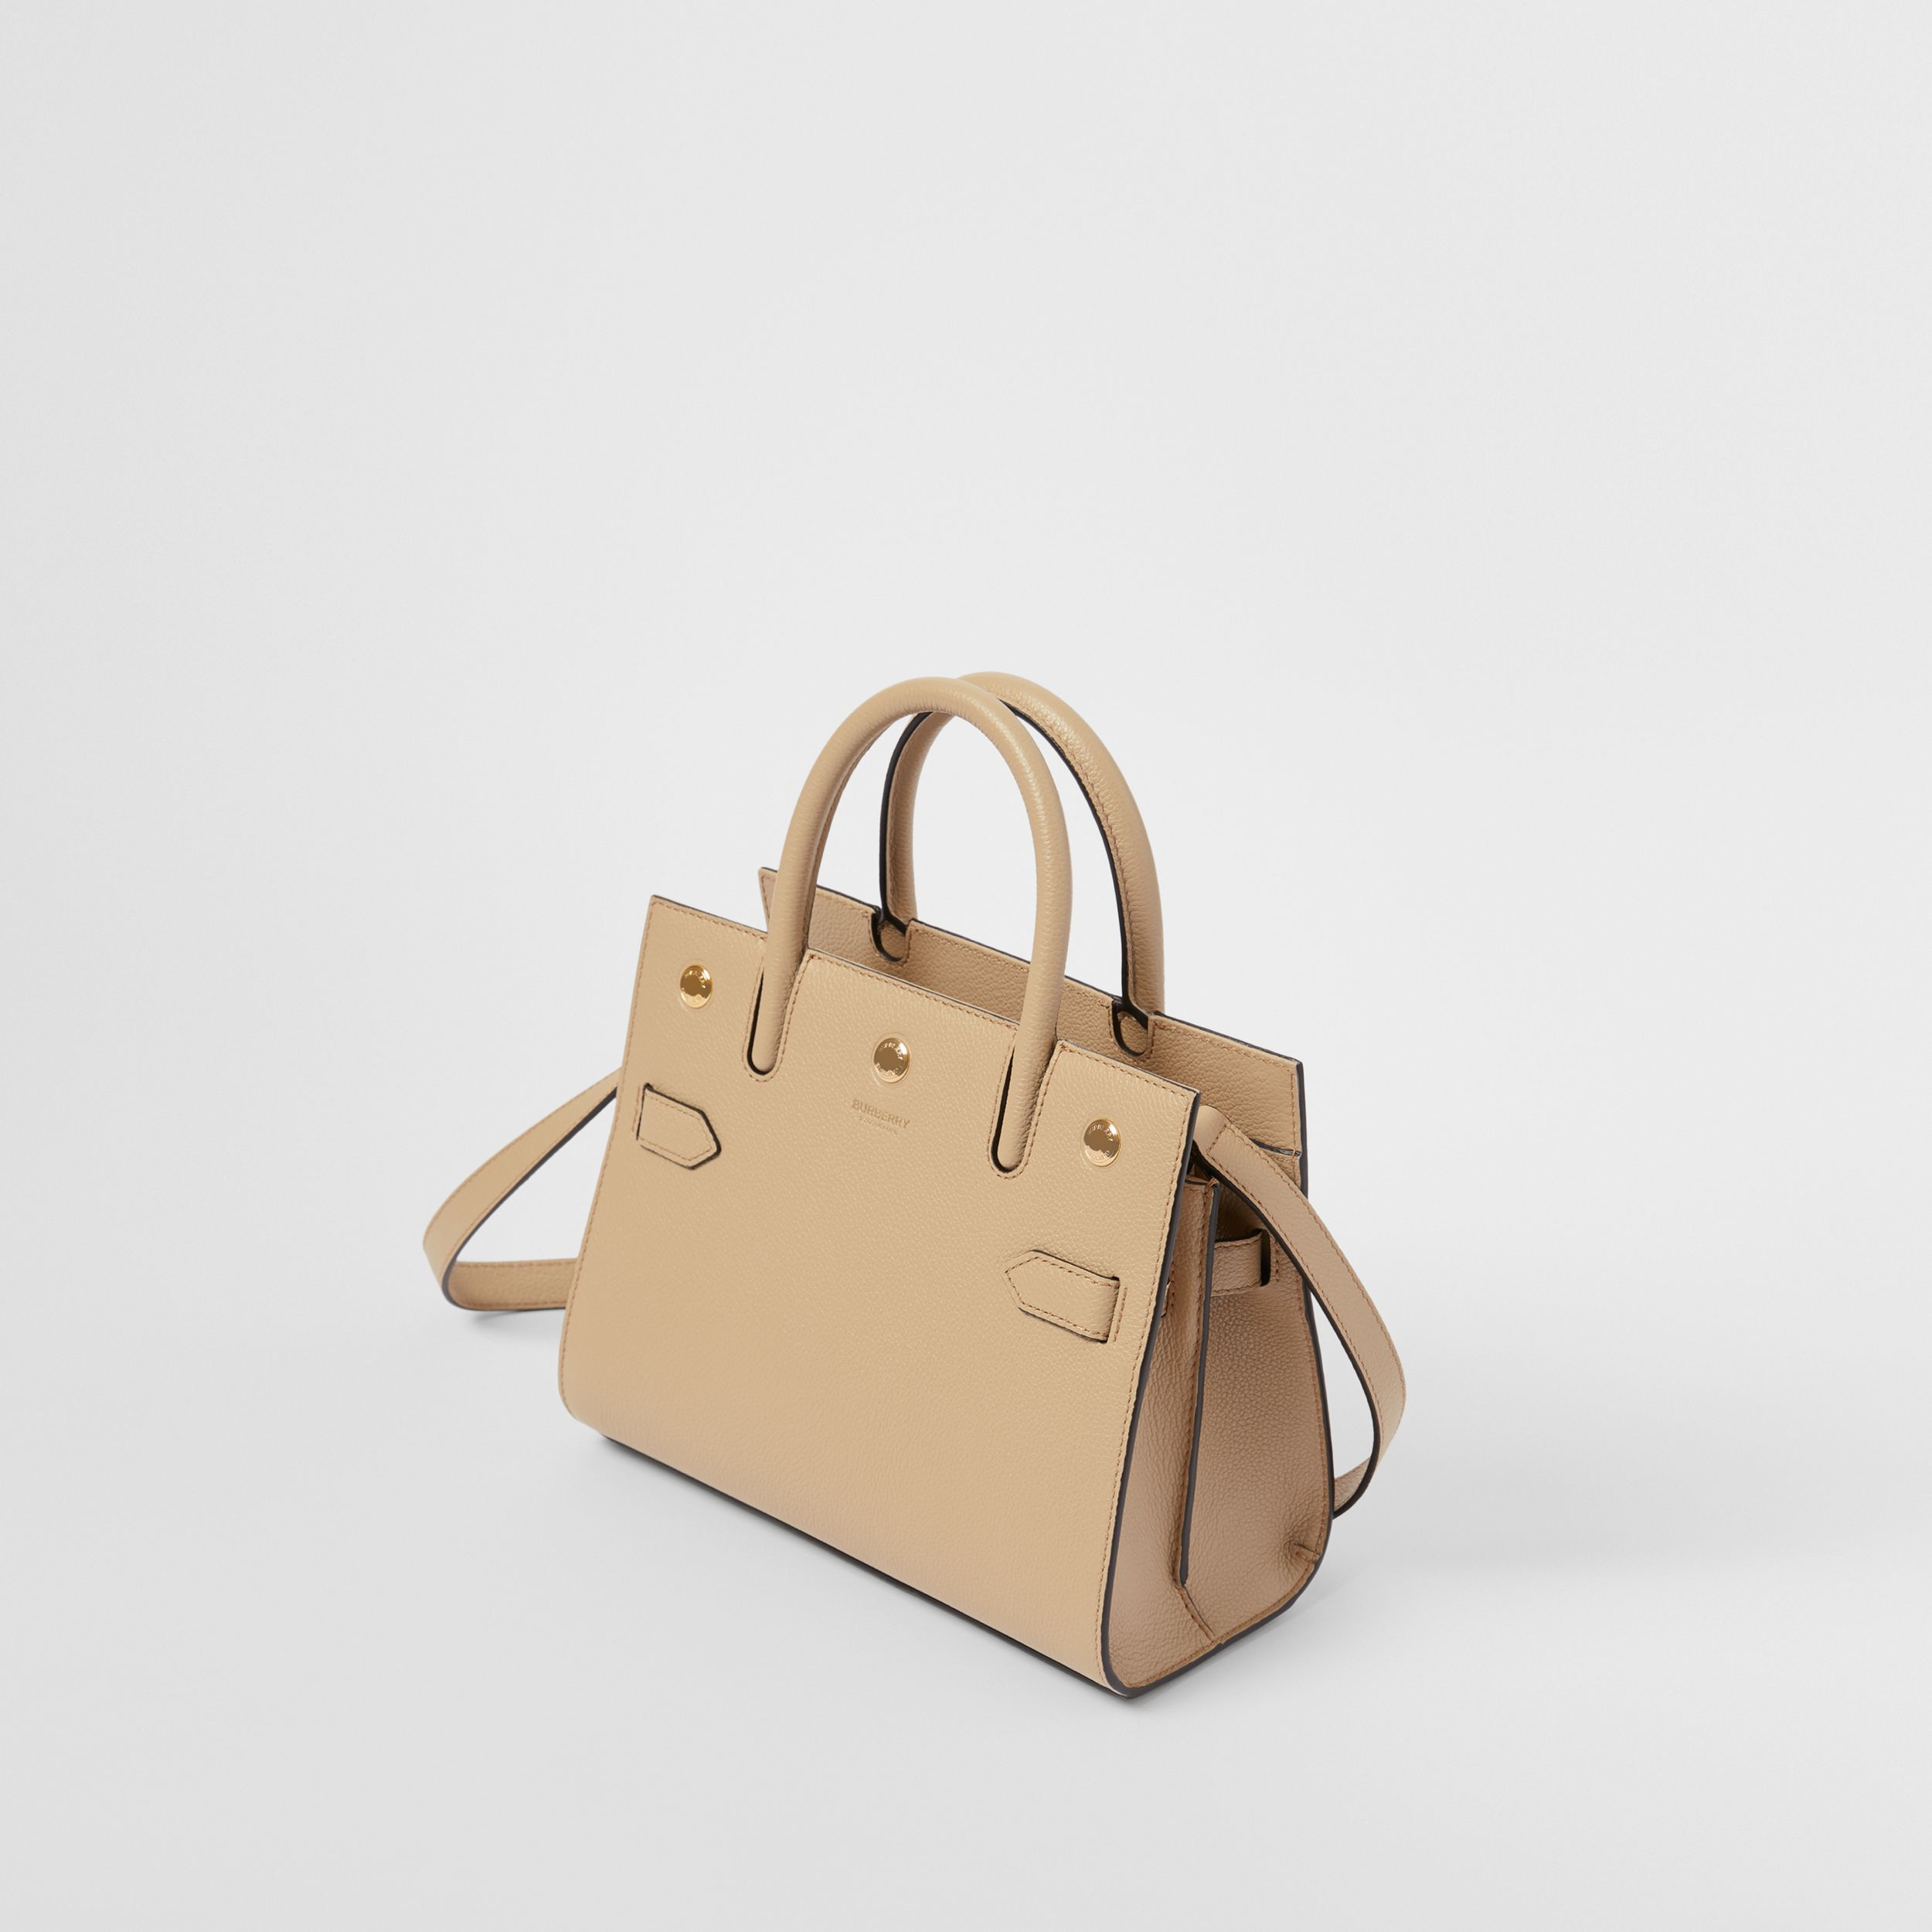 Mini Leather Two-handle Title Bag in Light Beige - Women | Burberry - 4